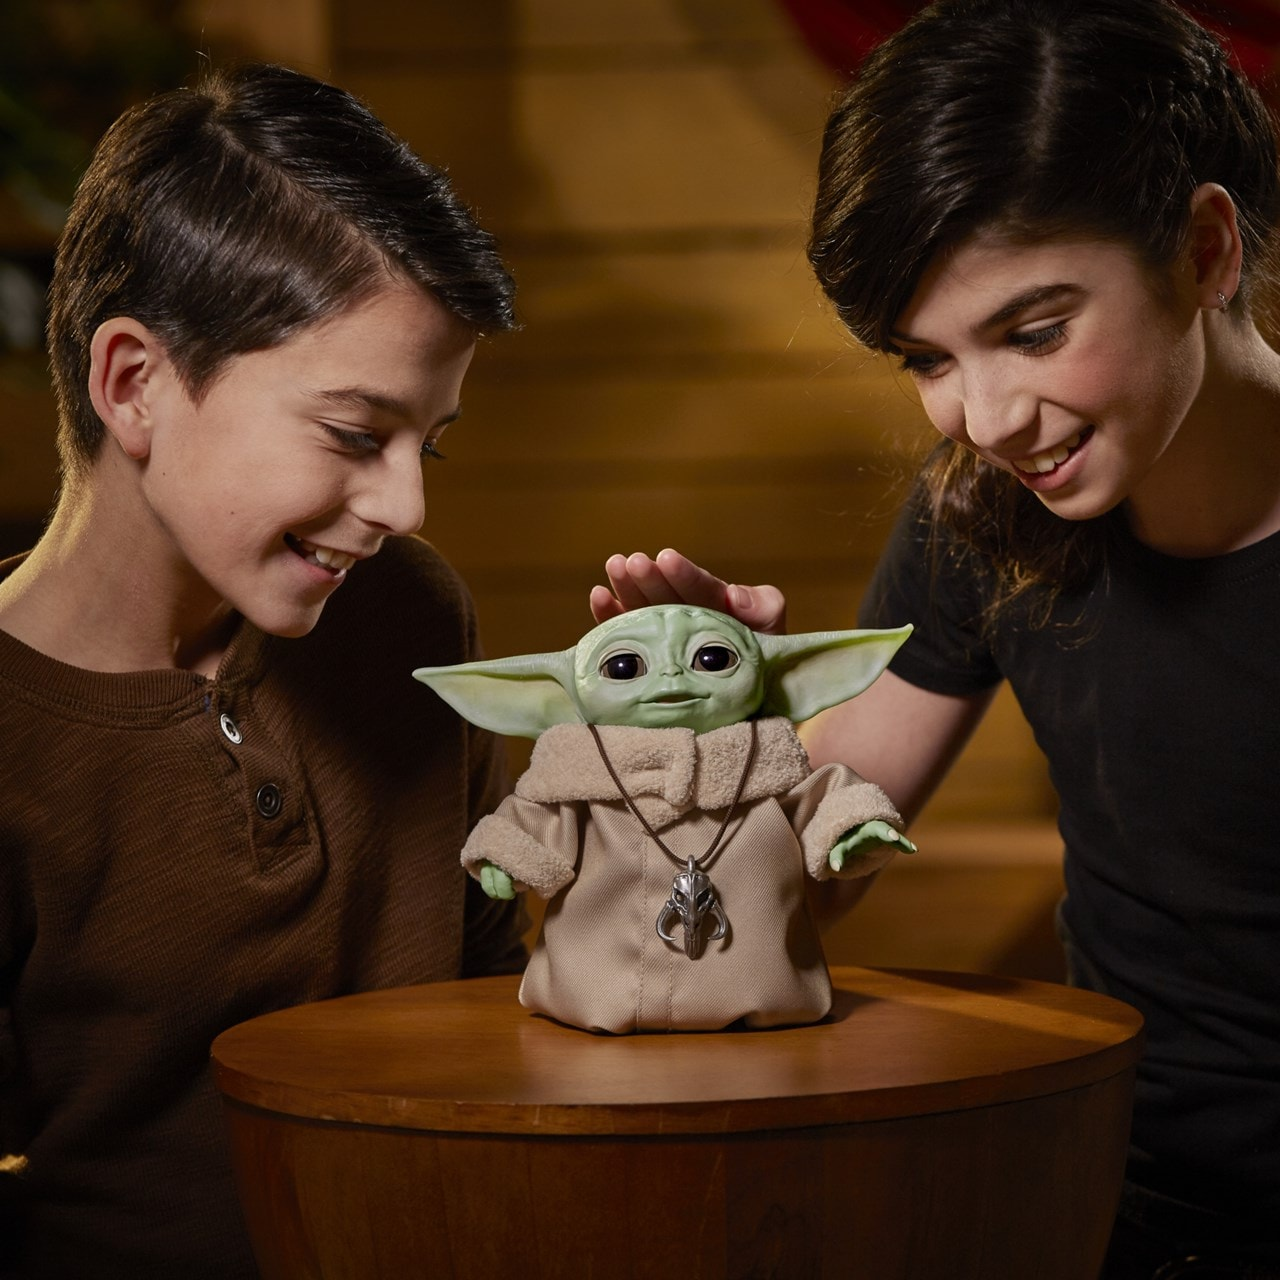 Star Wars: The Child (Baby Yoda) Animatronic Toy - 2